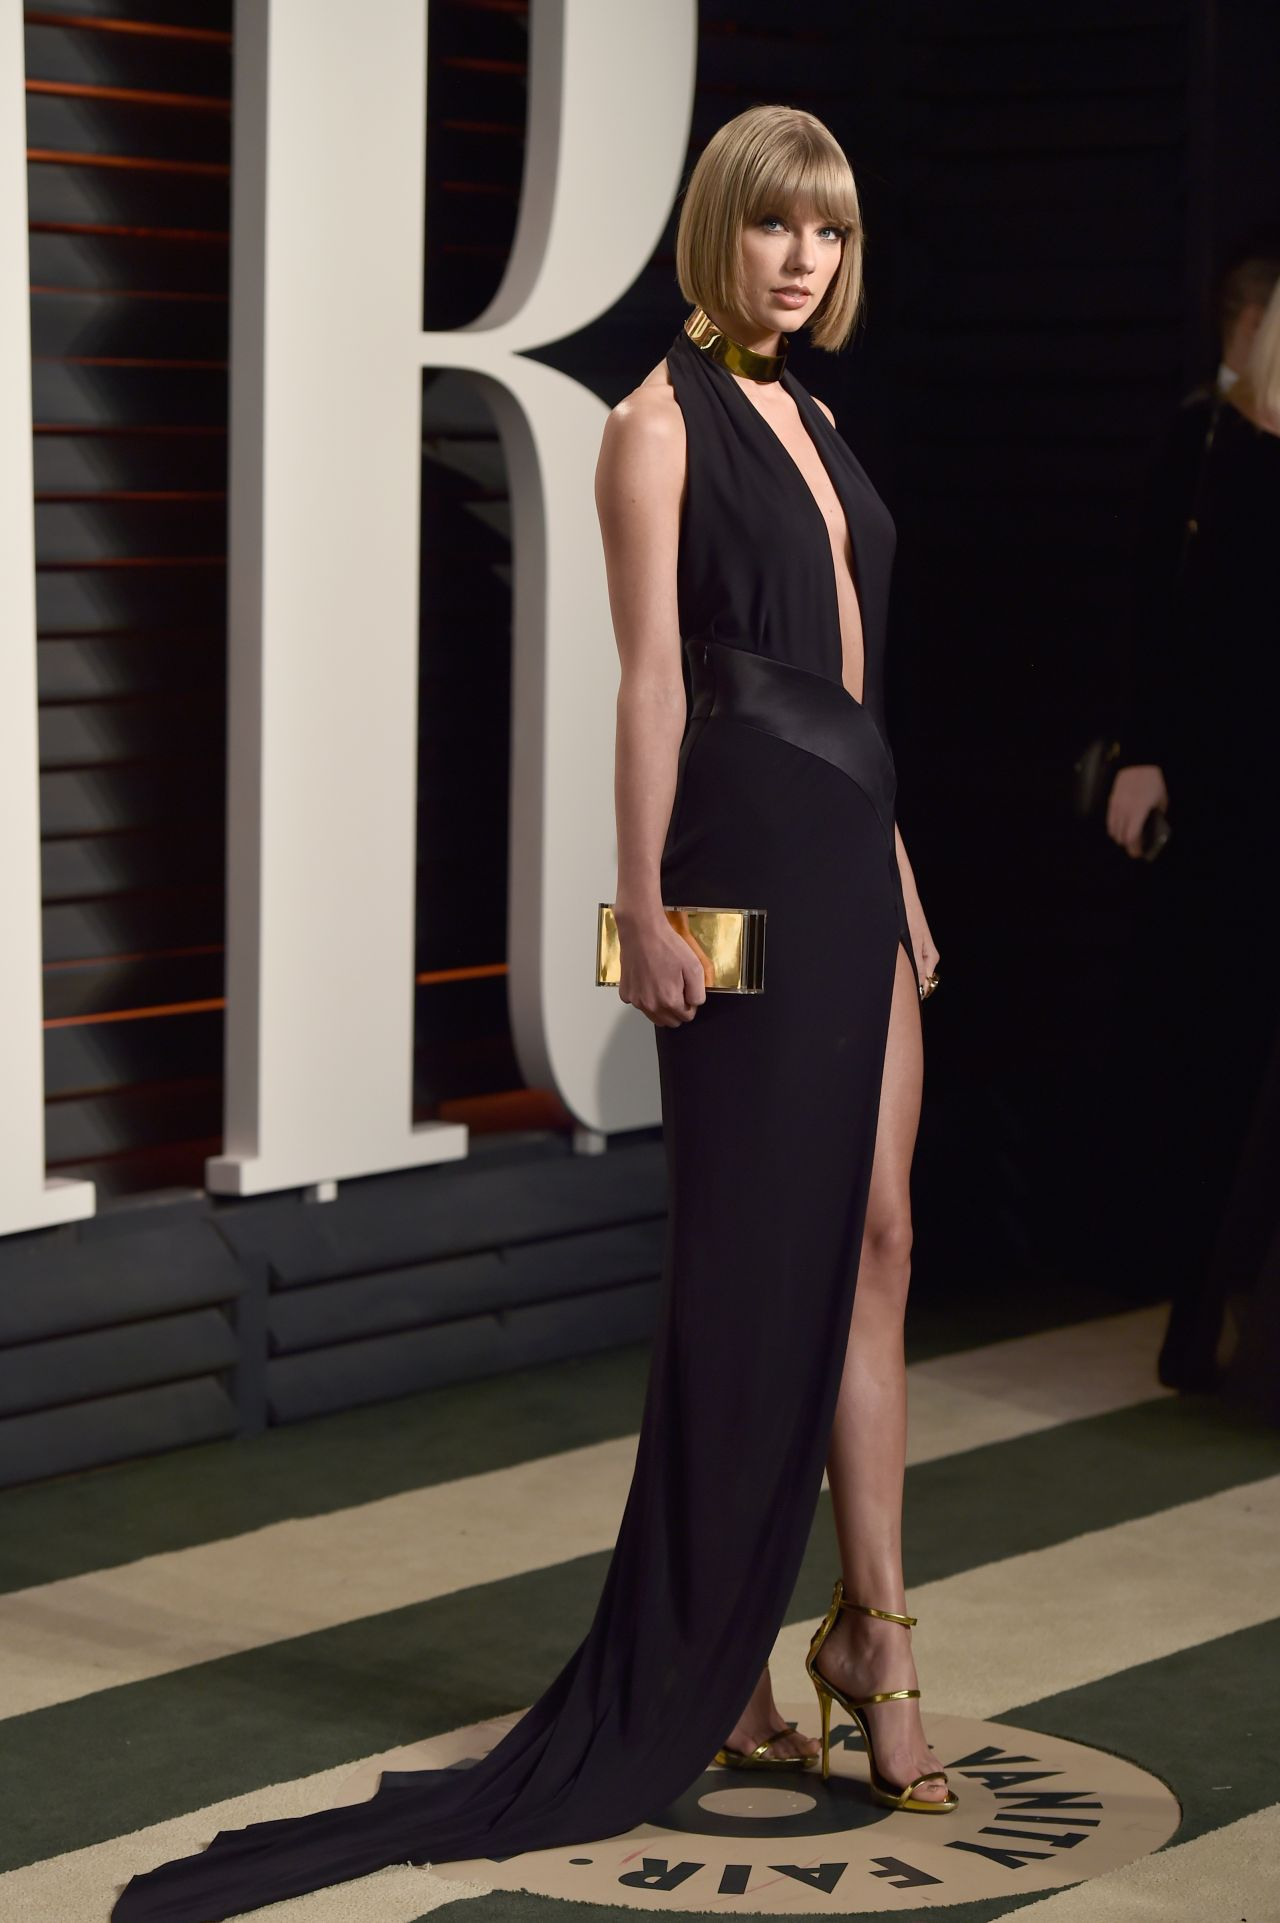 taylor-swift-vanity-fair-oscar-2016-party-in-beverly-hills-ca-3